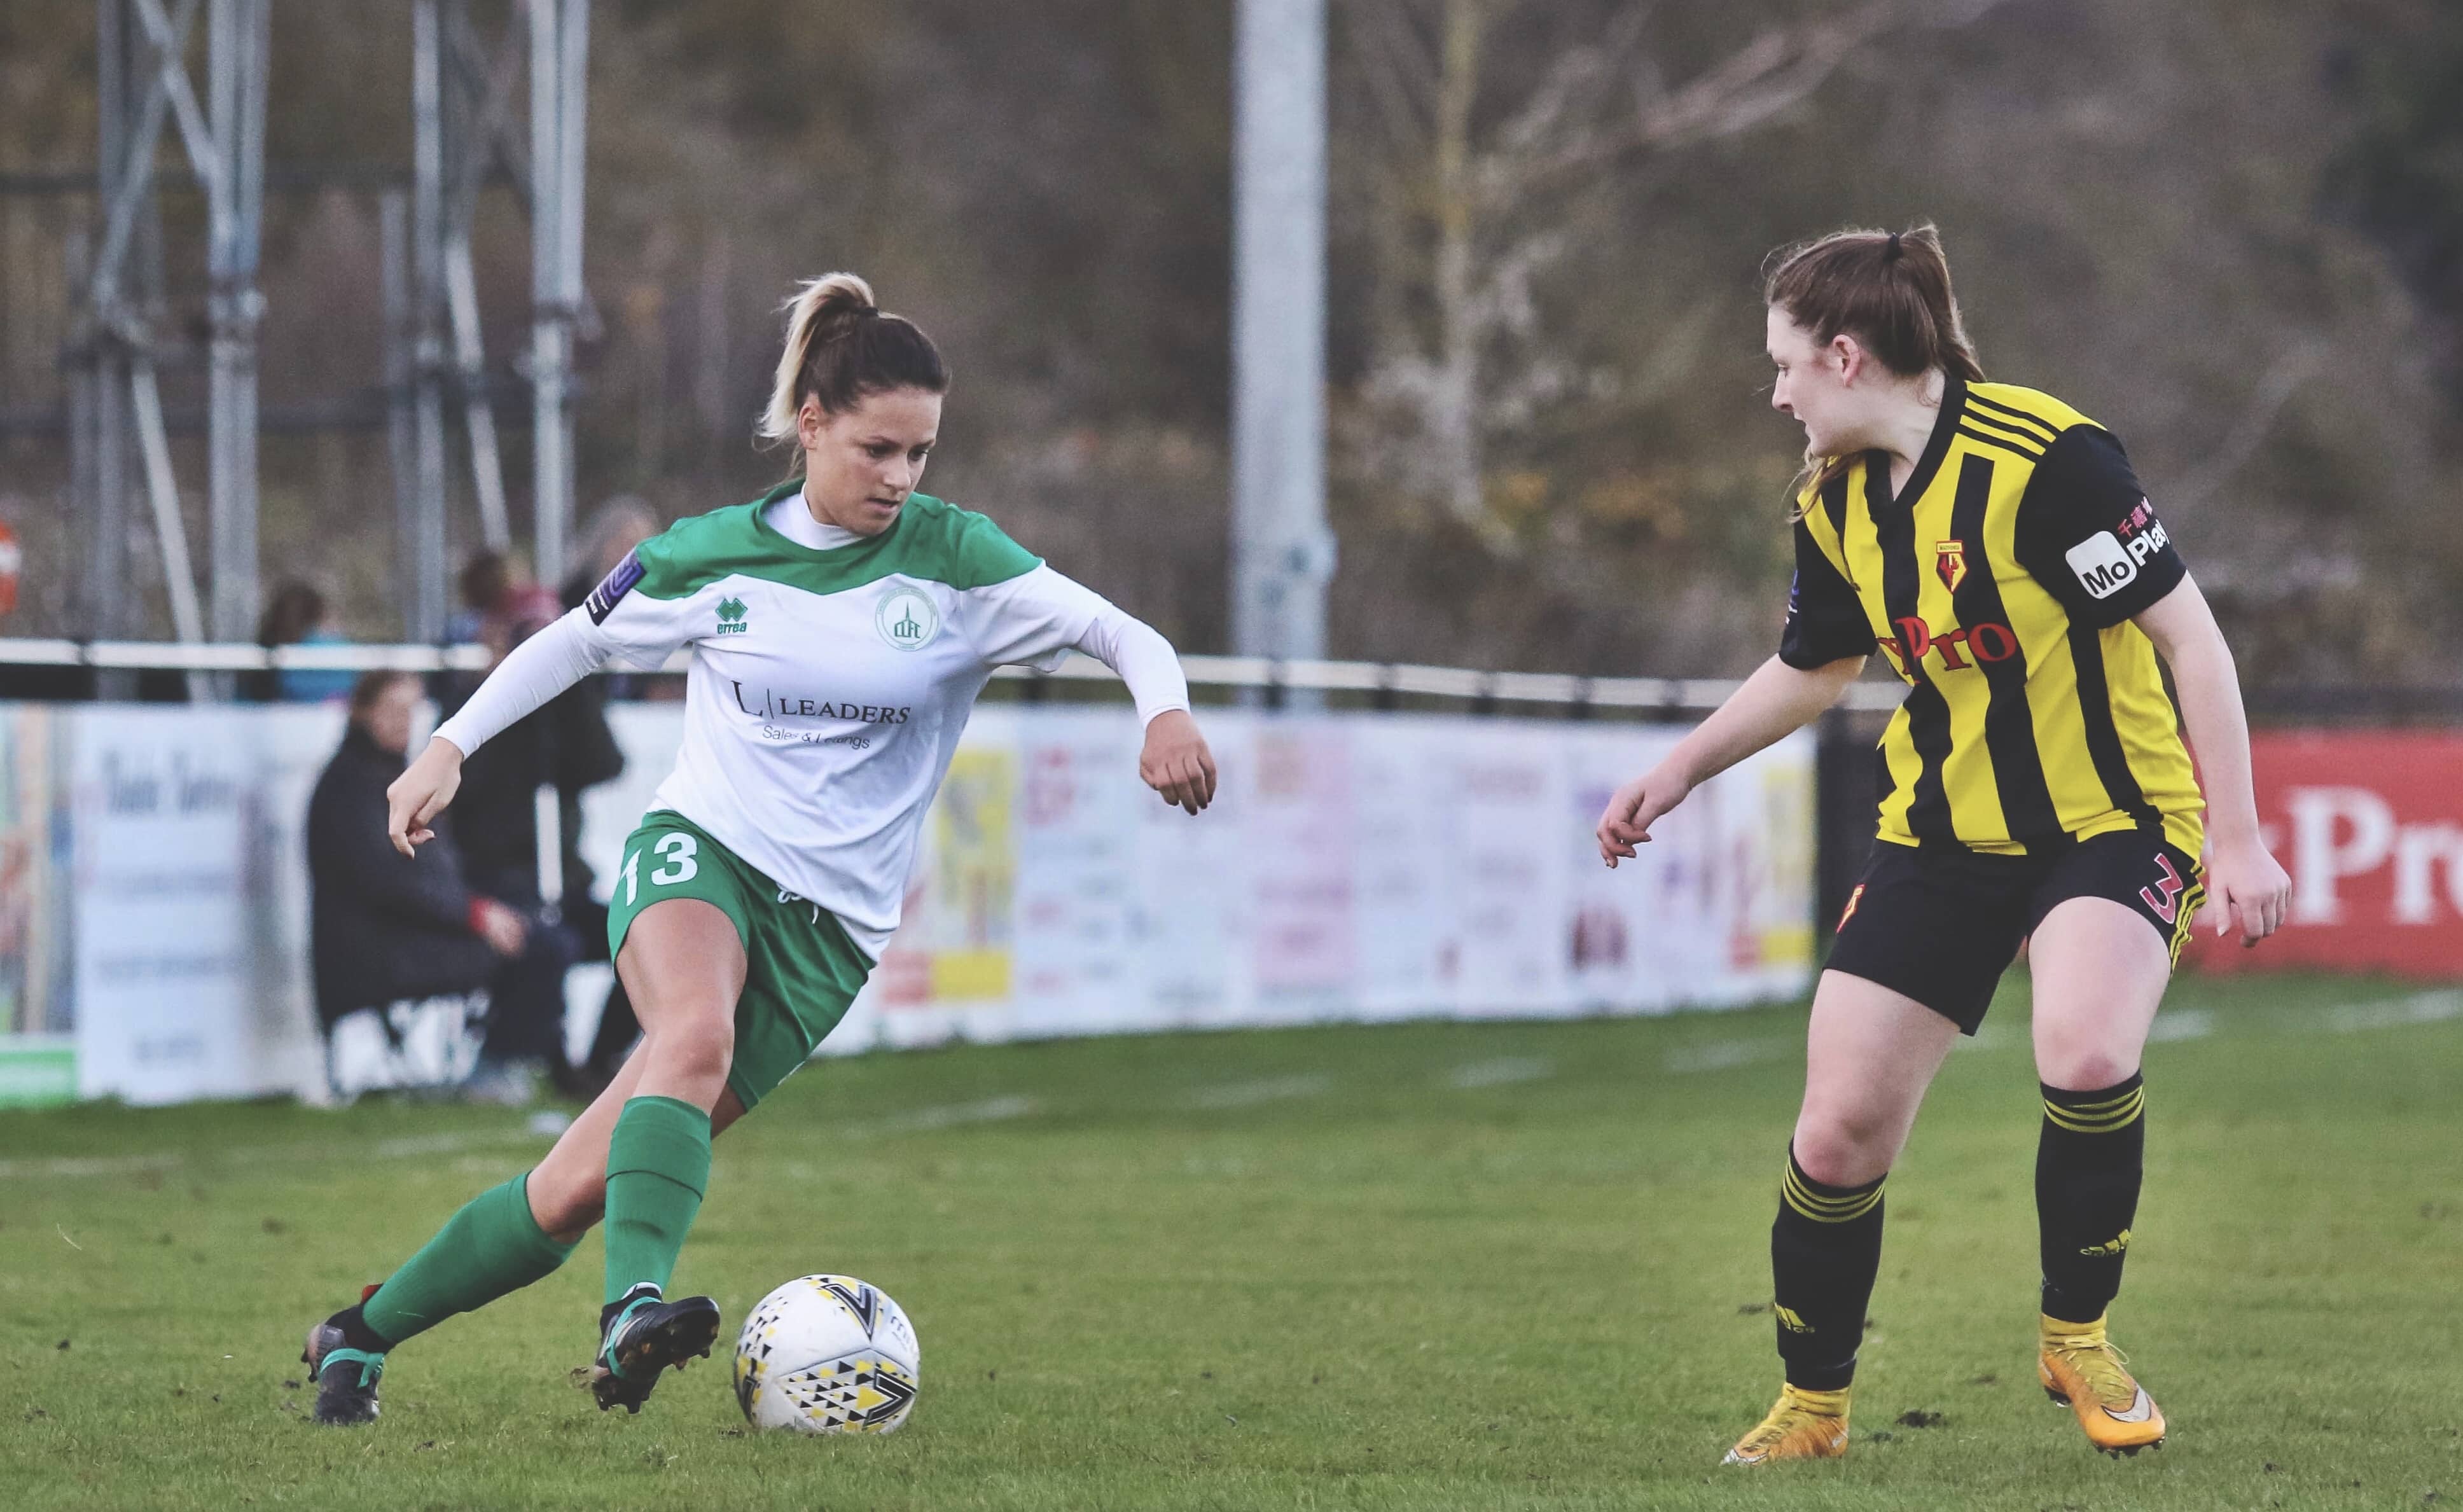 Chichester's Khassel takes on a Watford Ladies defender. Photo by Sheena Booker.